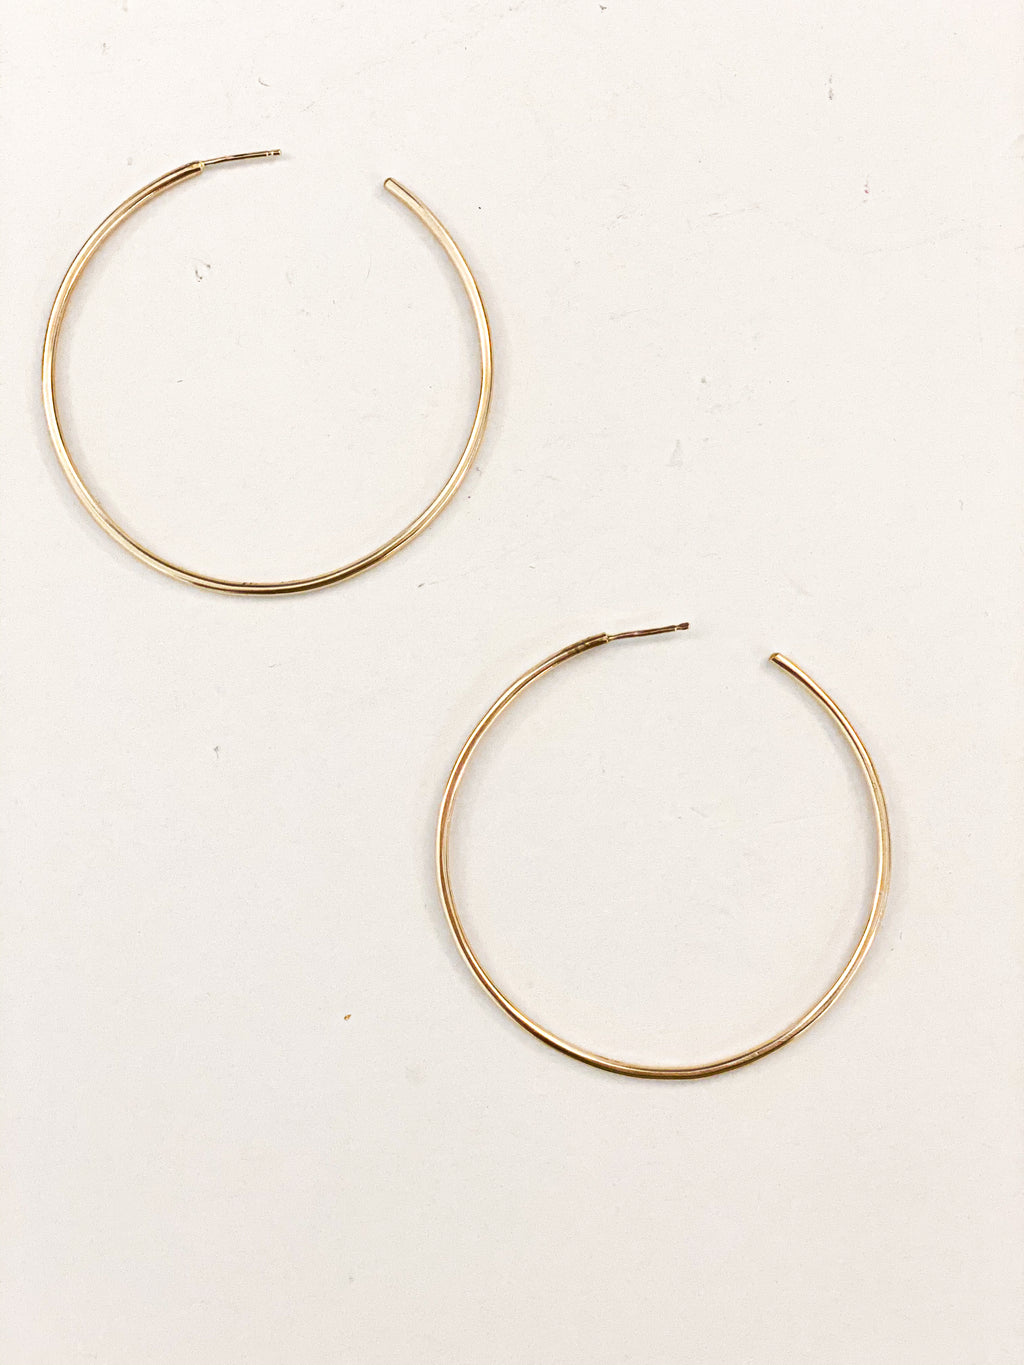 Primary Gold Hoops